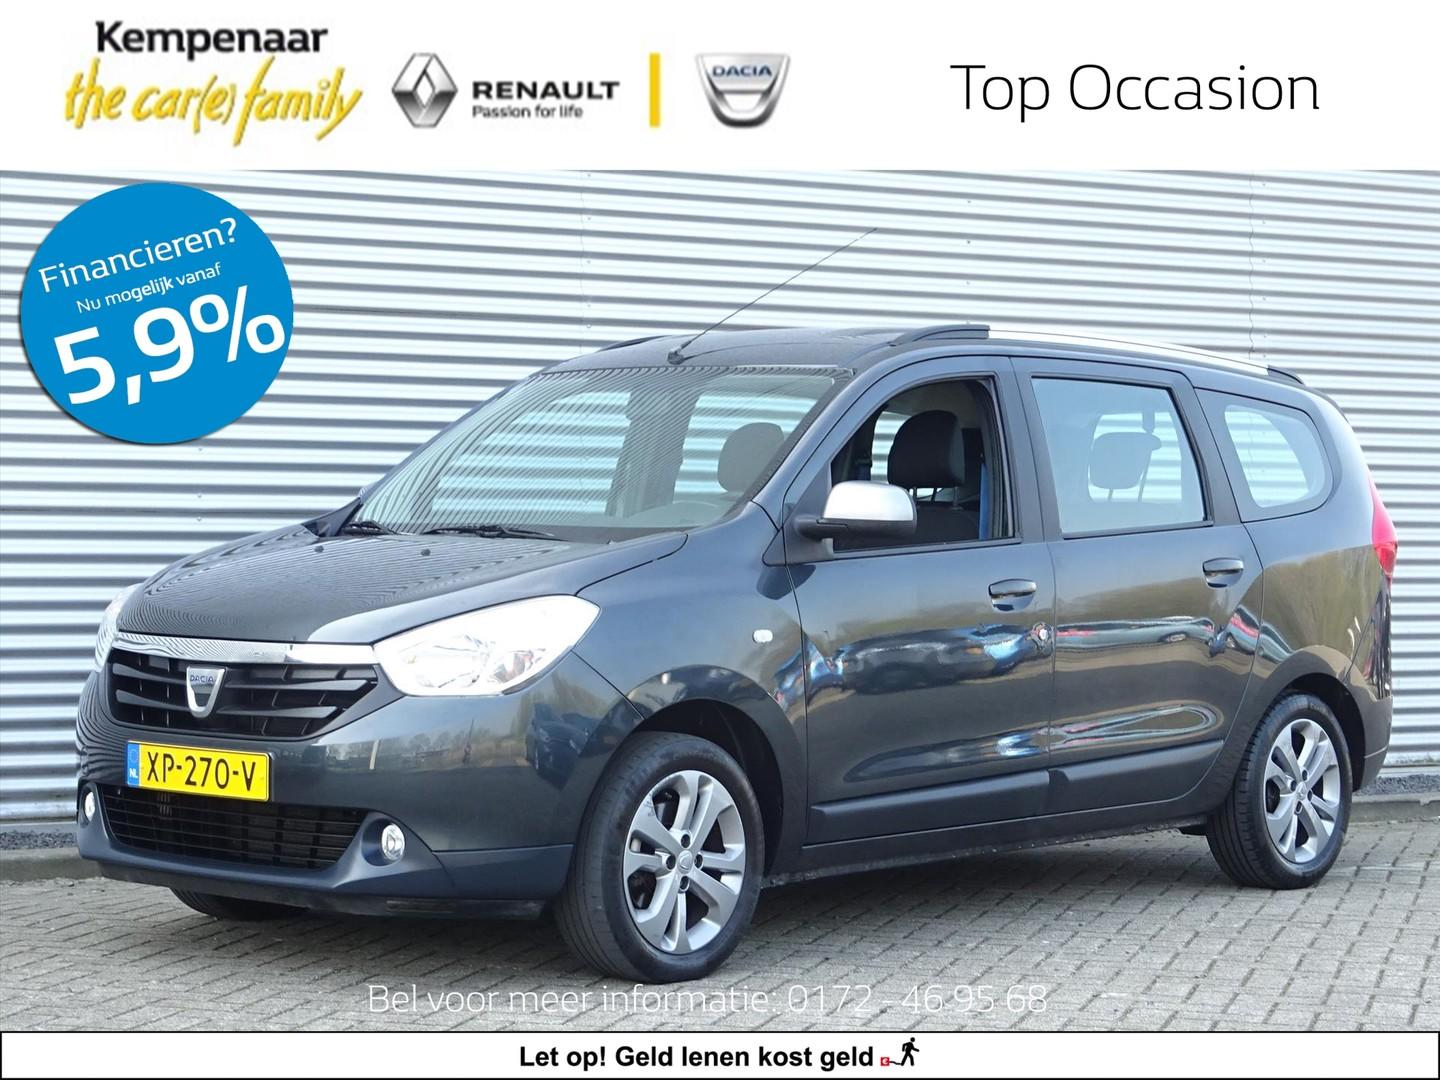 Dacia Lodgy 1.2 tce 115pk 5p 10th anniversary